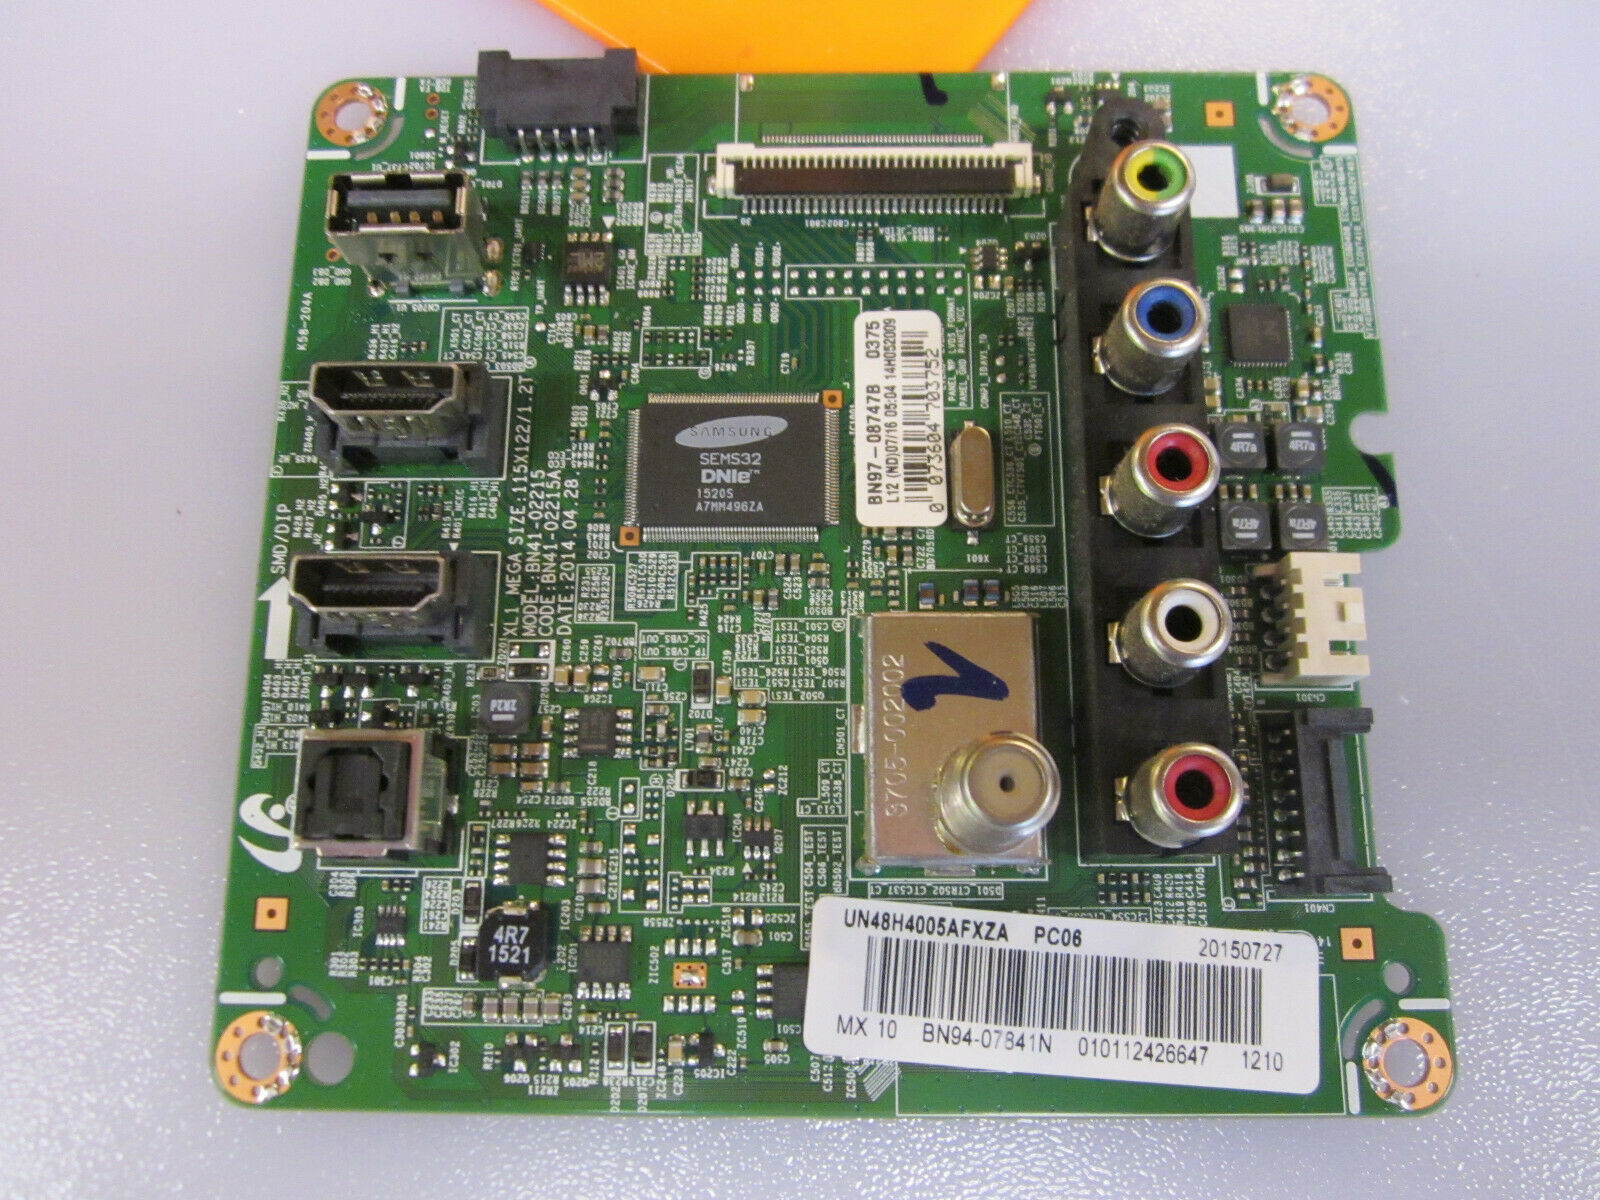 Samsung BN94-07841N Main Board for UN48H4005AFXZA US02